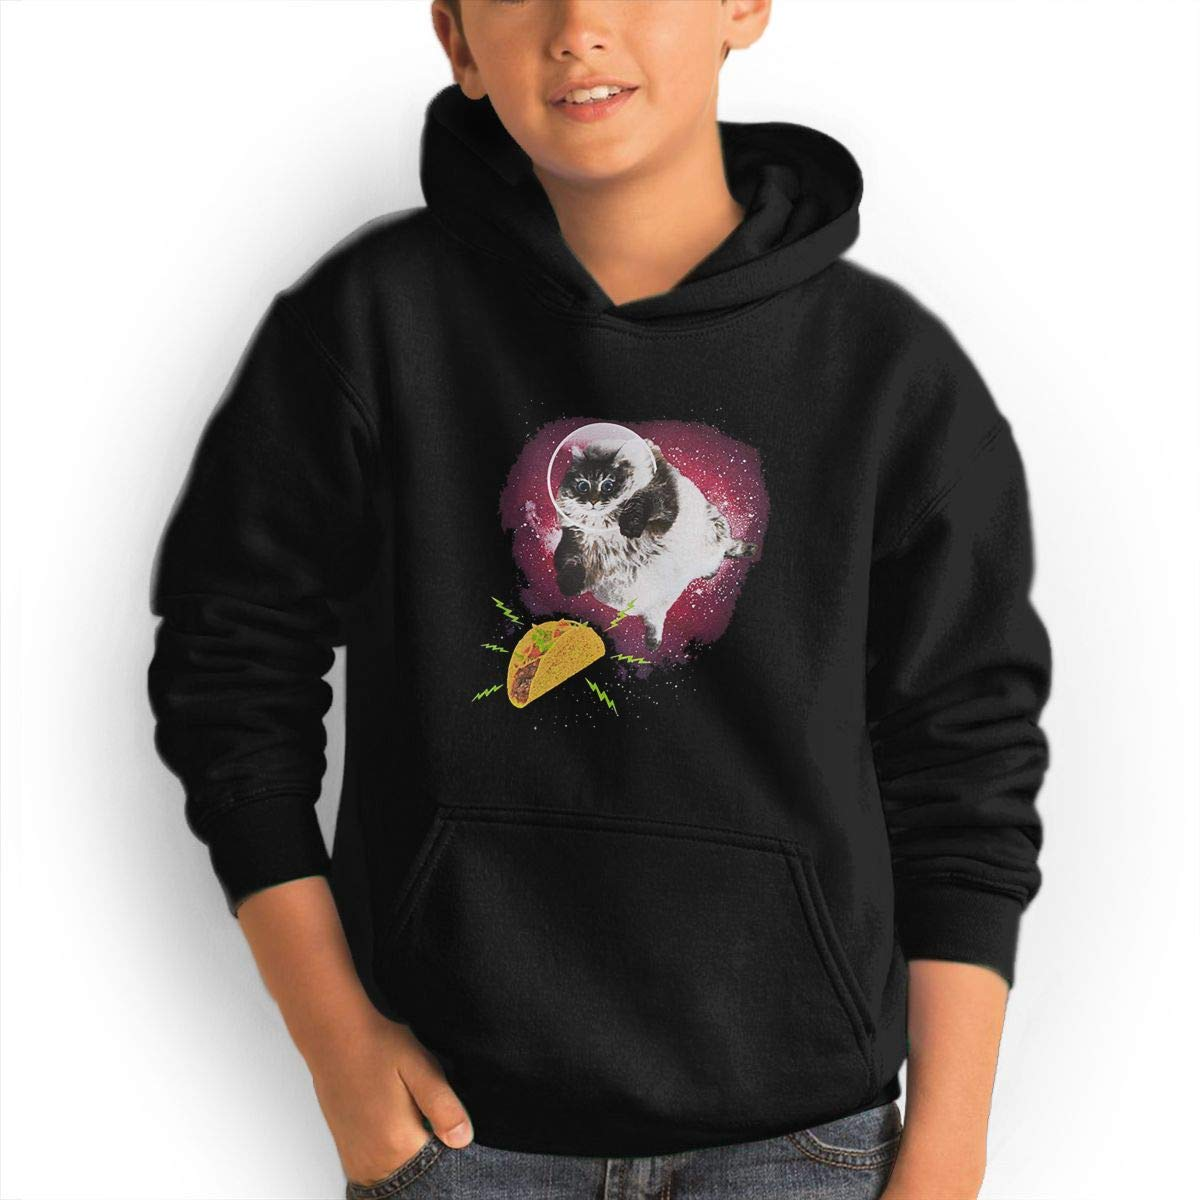 Space Cat with Tacos Youth Boys/Girls Hoodie Sweatshirt Hooded with Pocket S